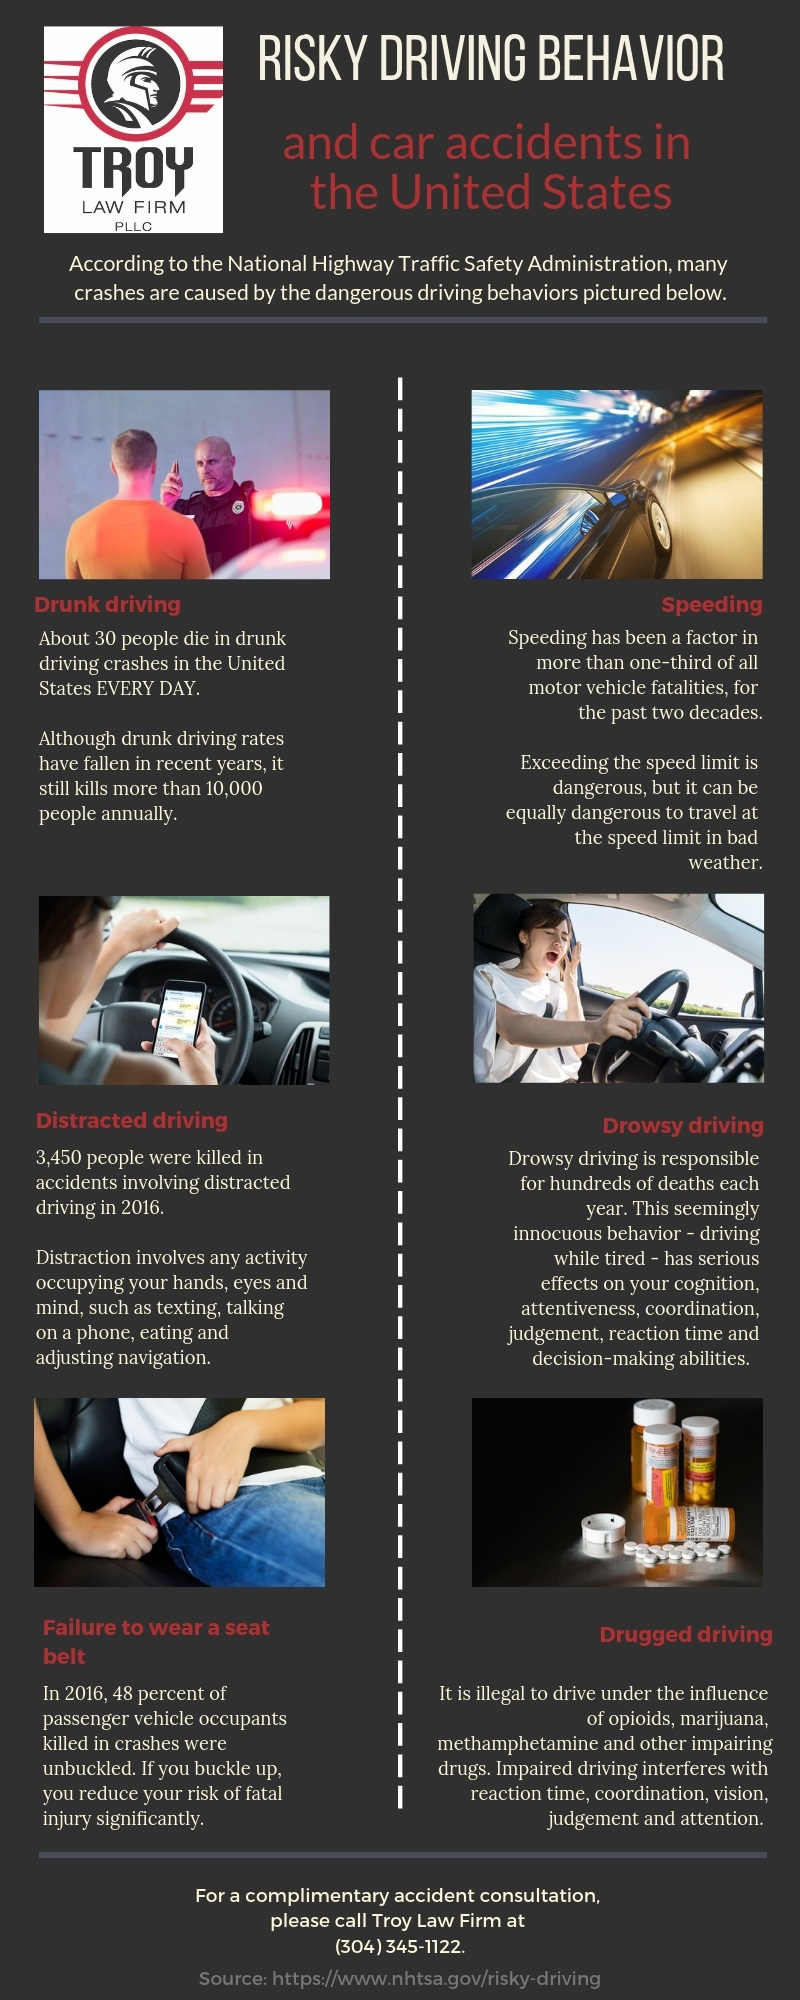 Infographic picturing the riskiest driving behaviors in the US